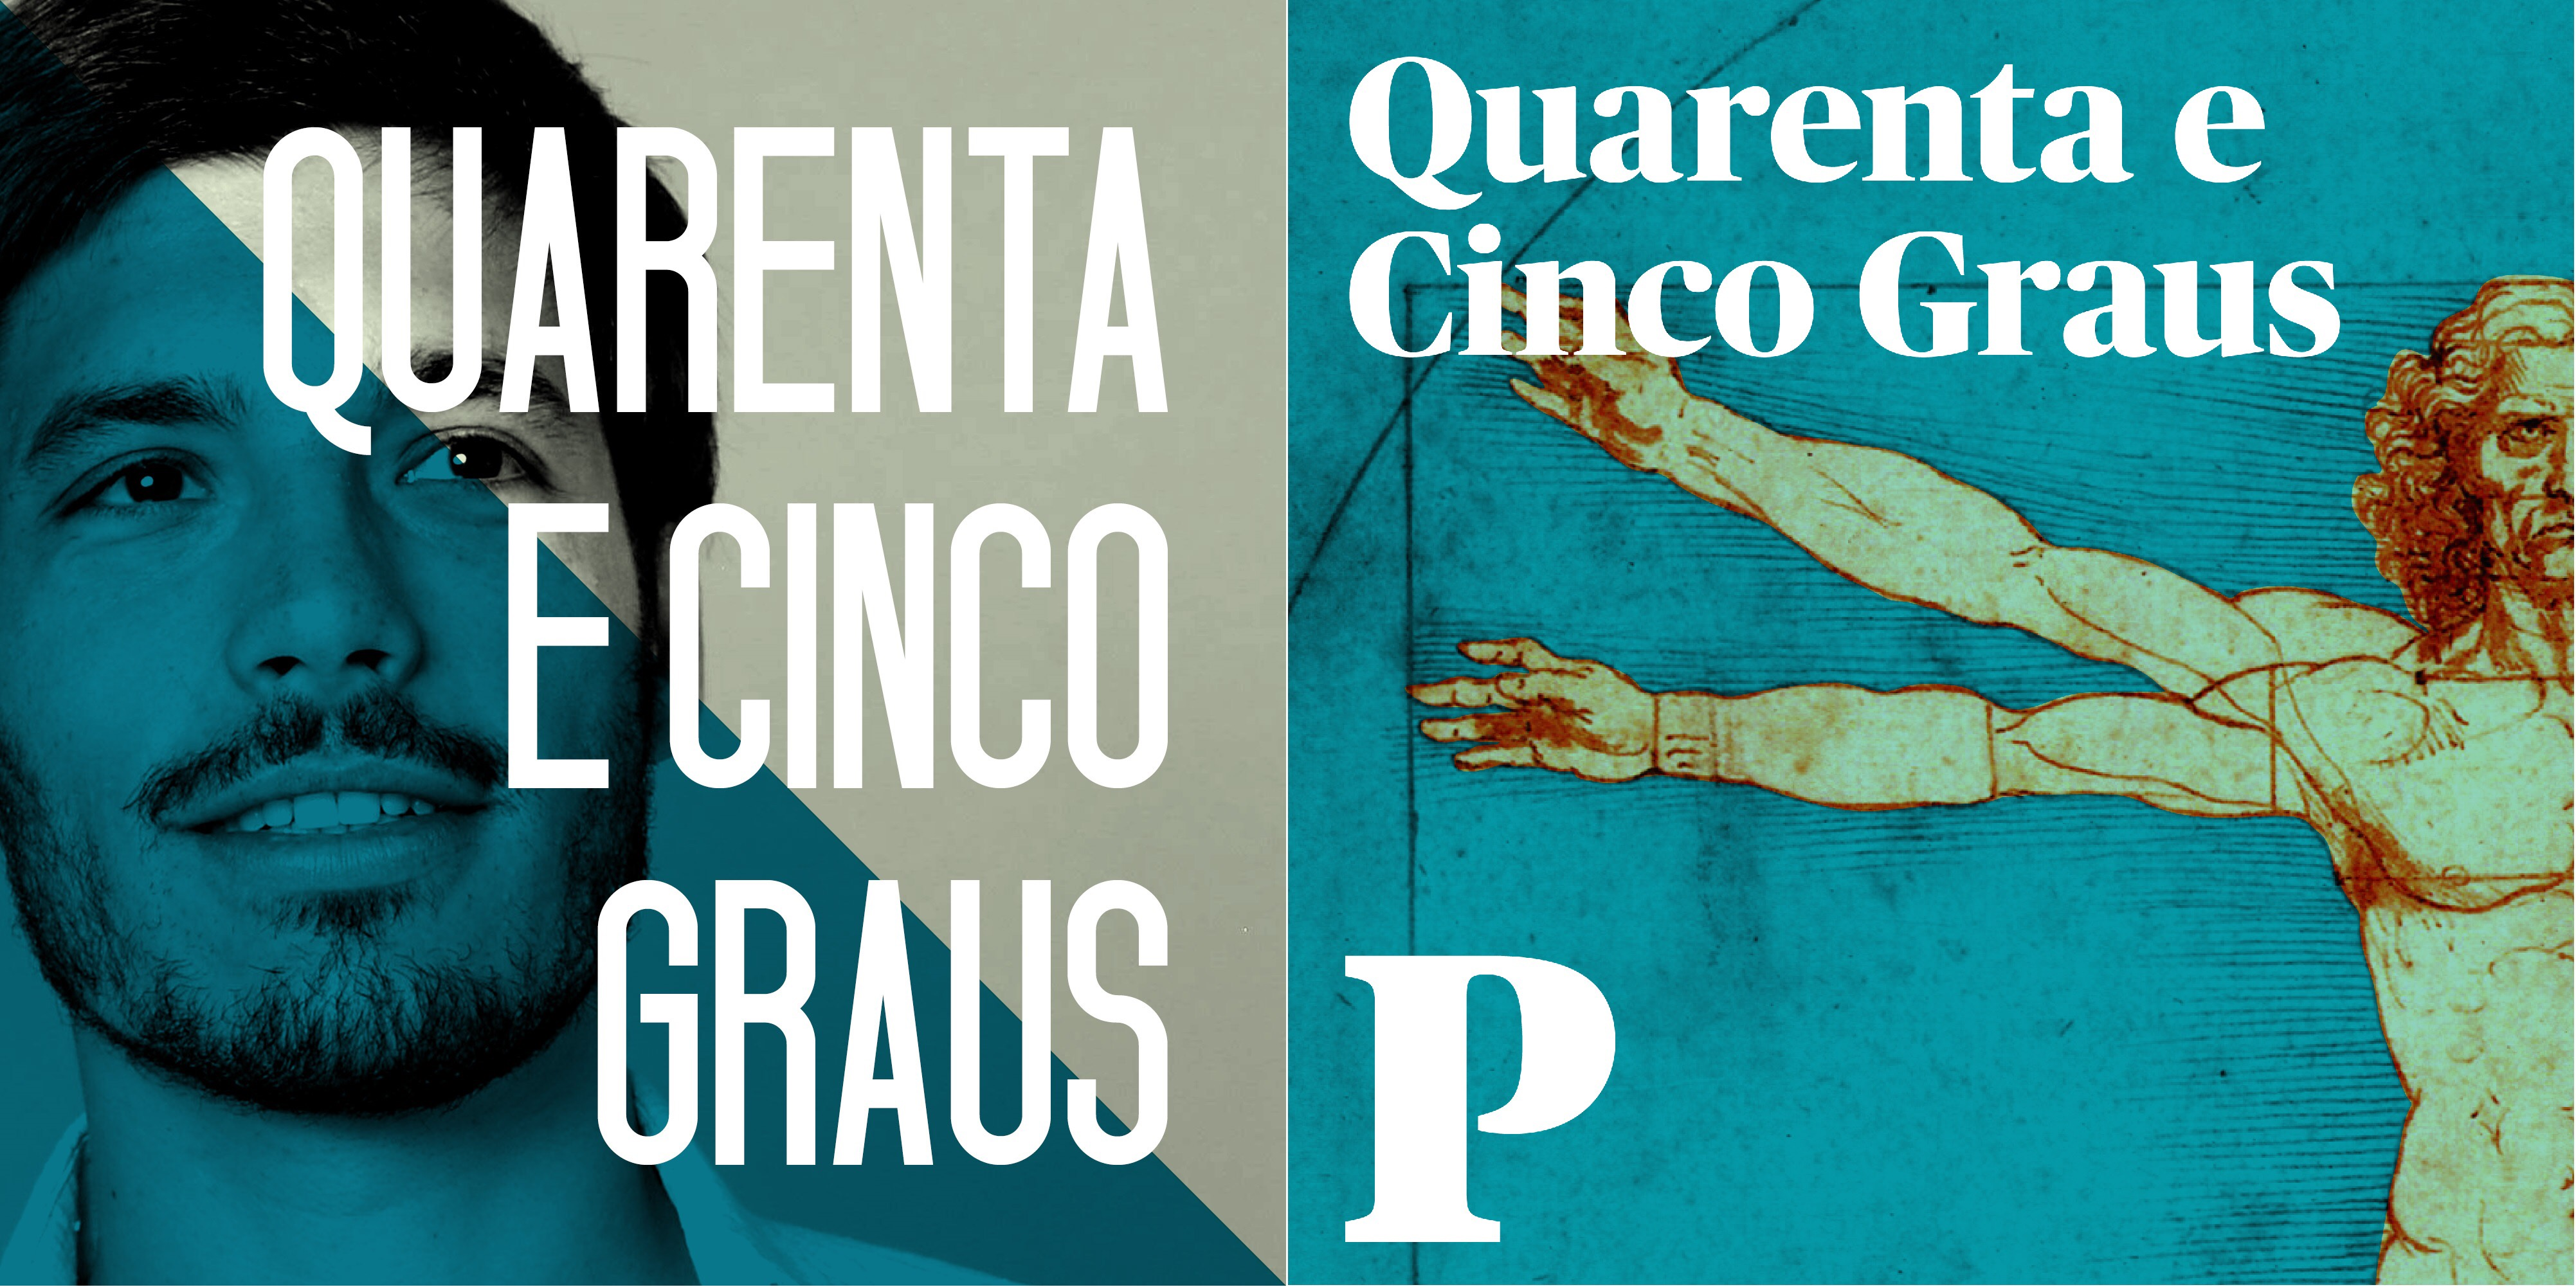 Logo for Quarenta e Cinco Graus